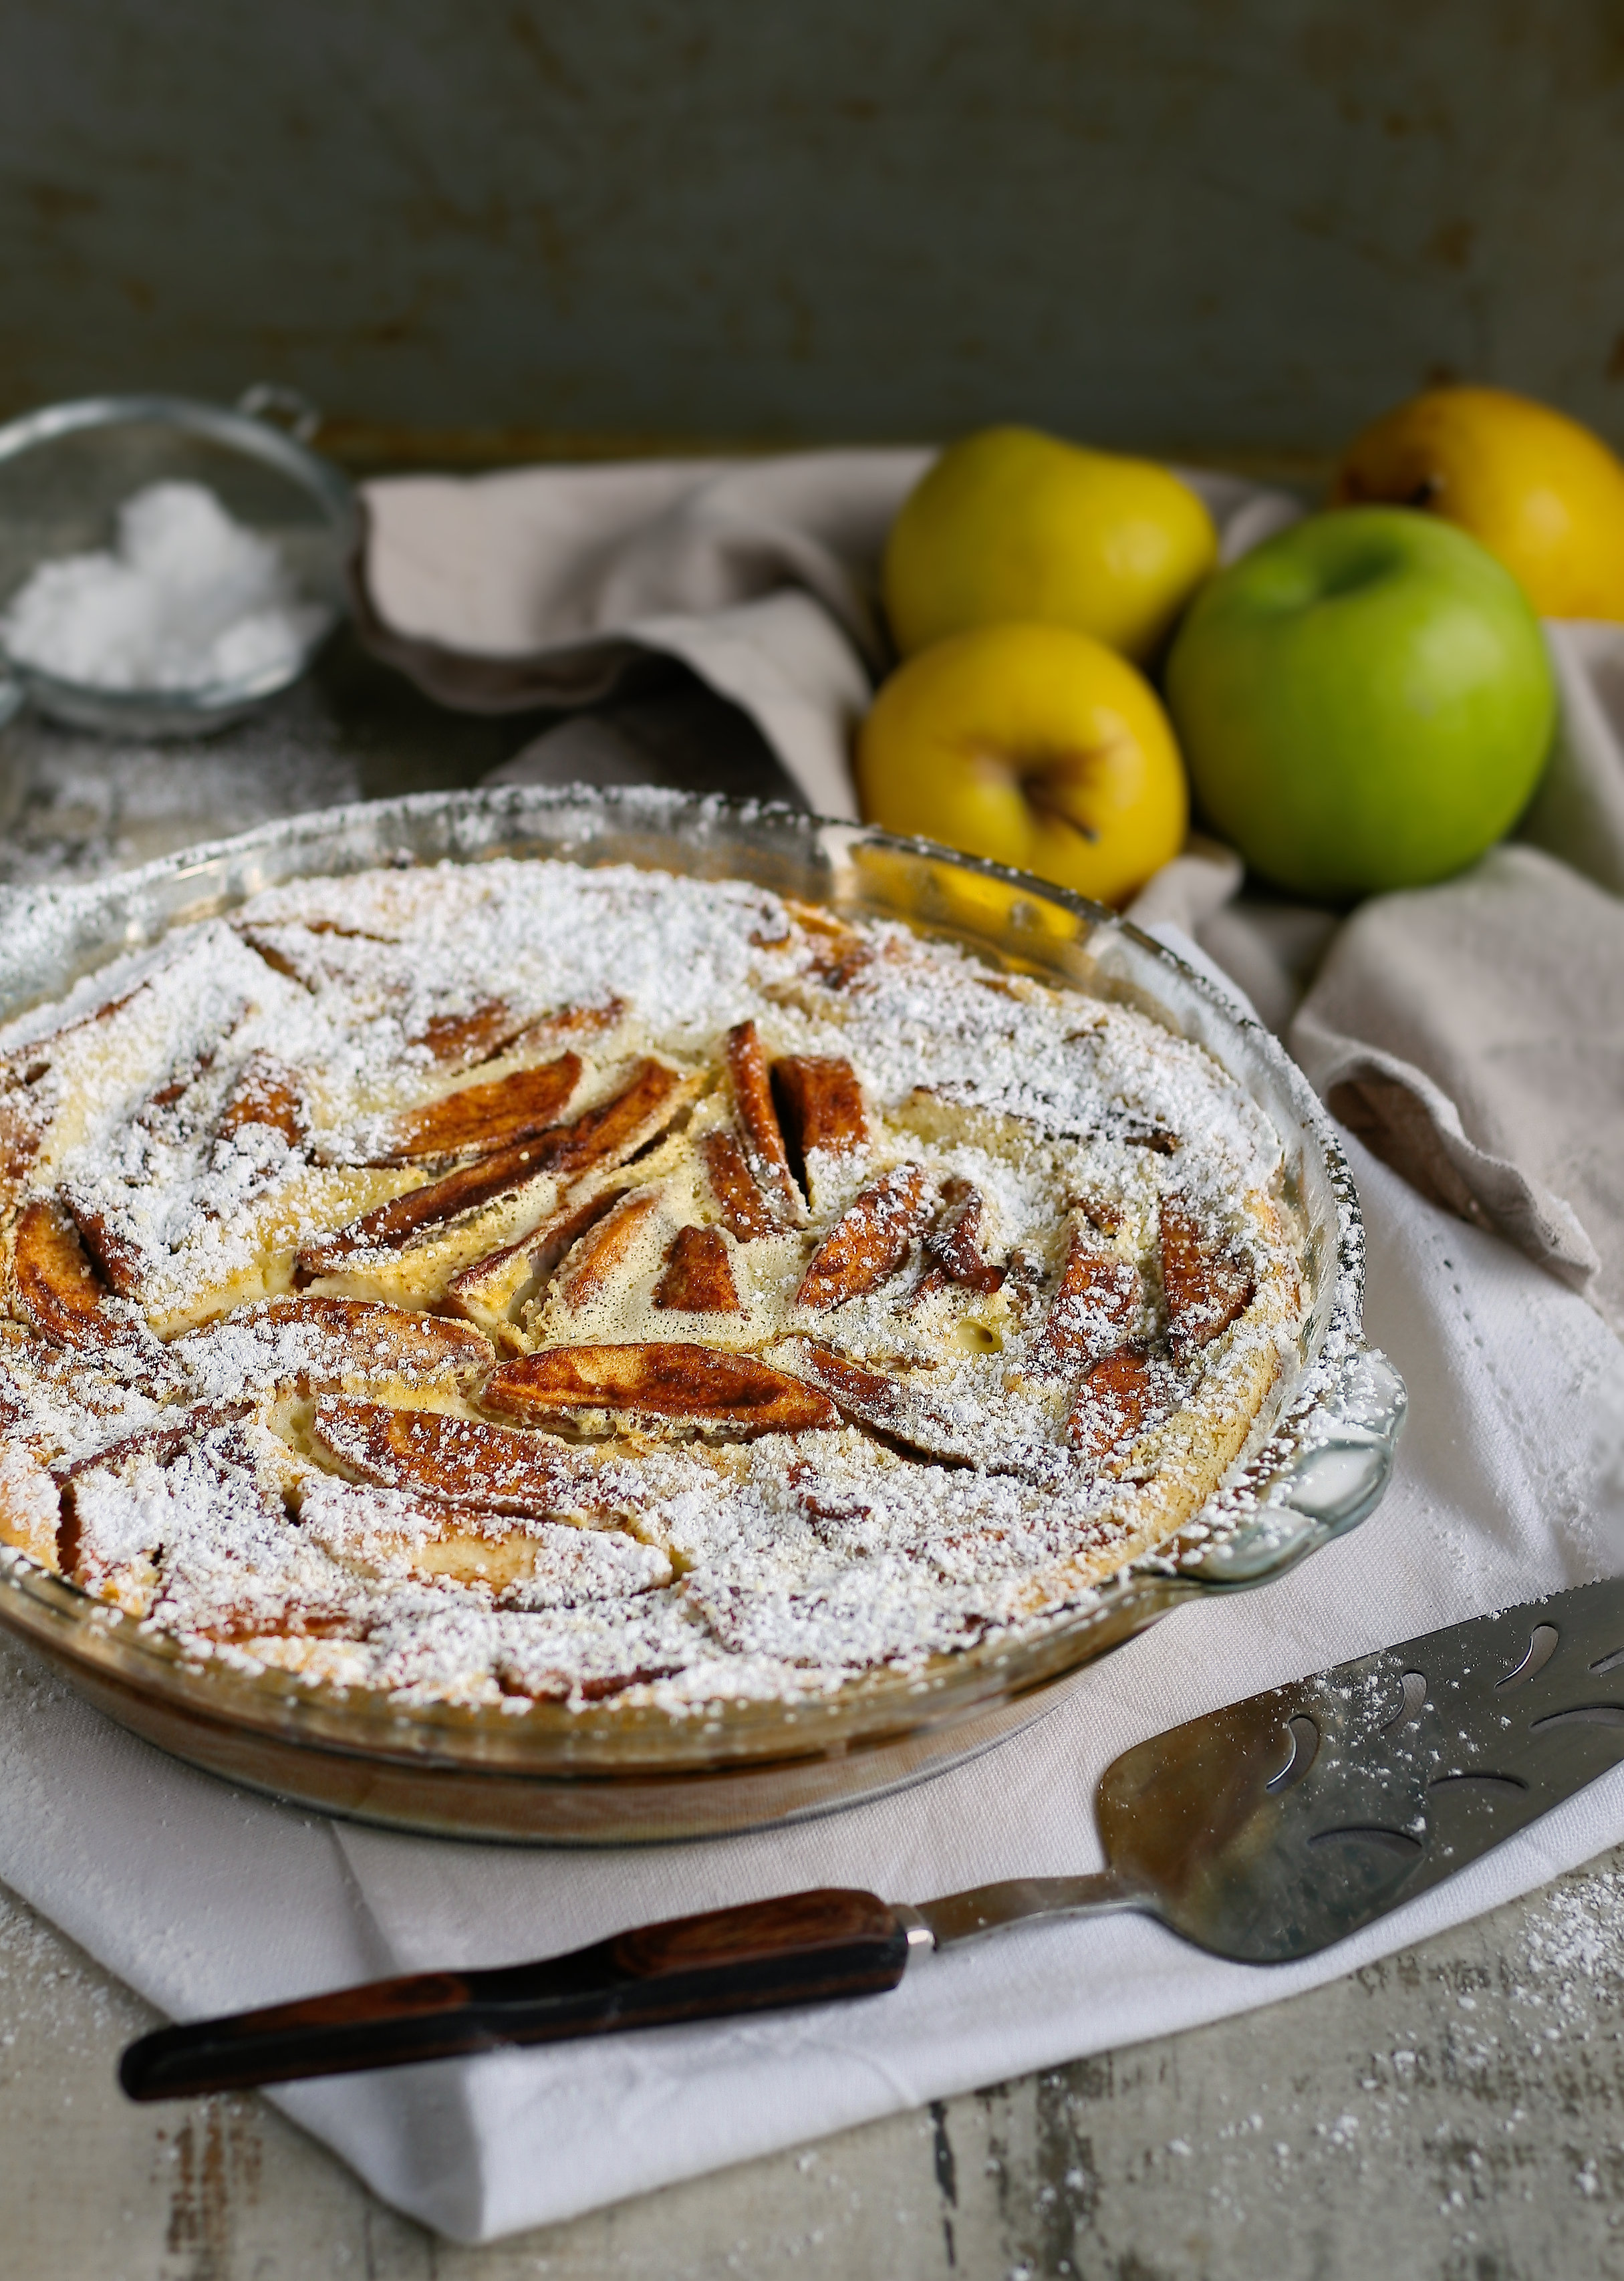 Easy French clafoutis recipe with apples